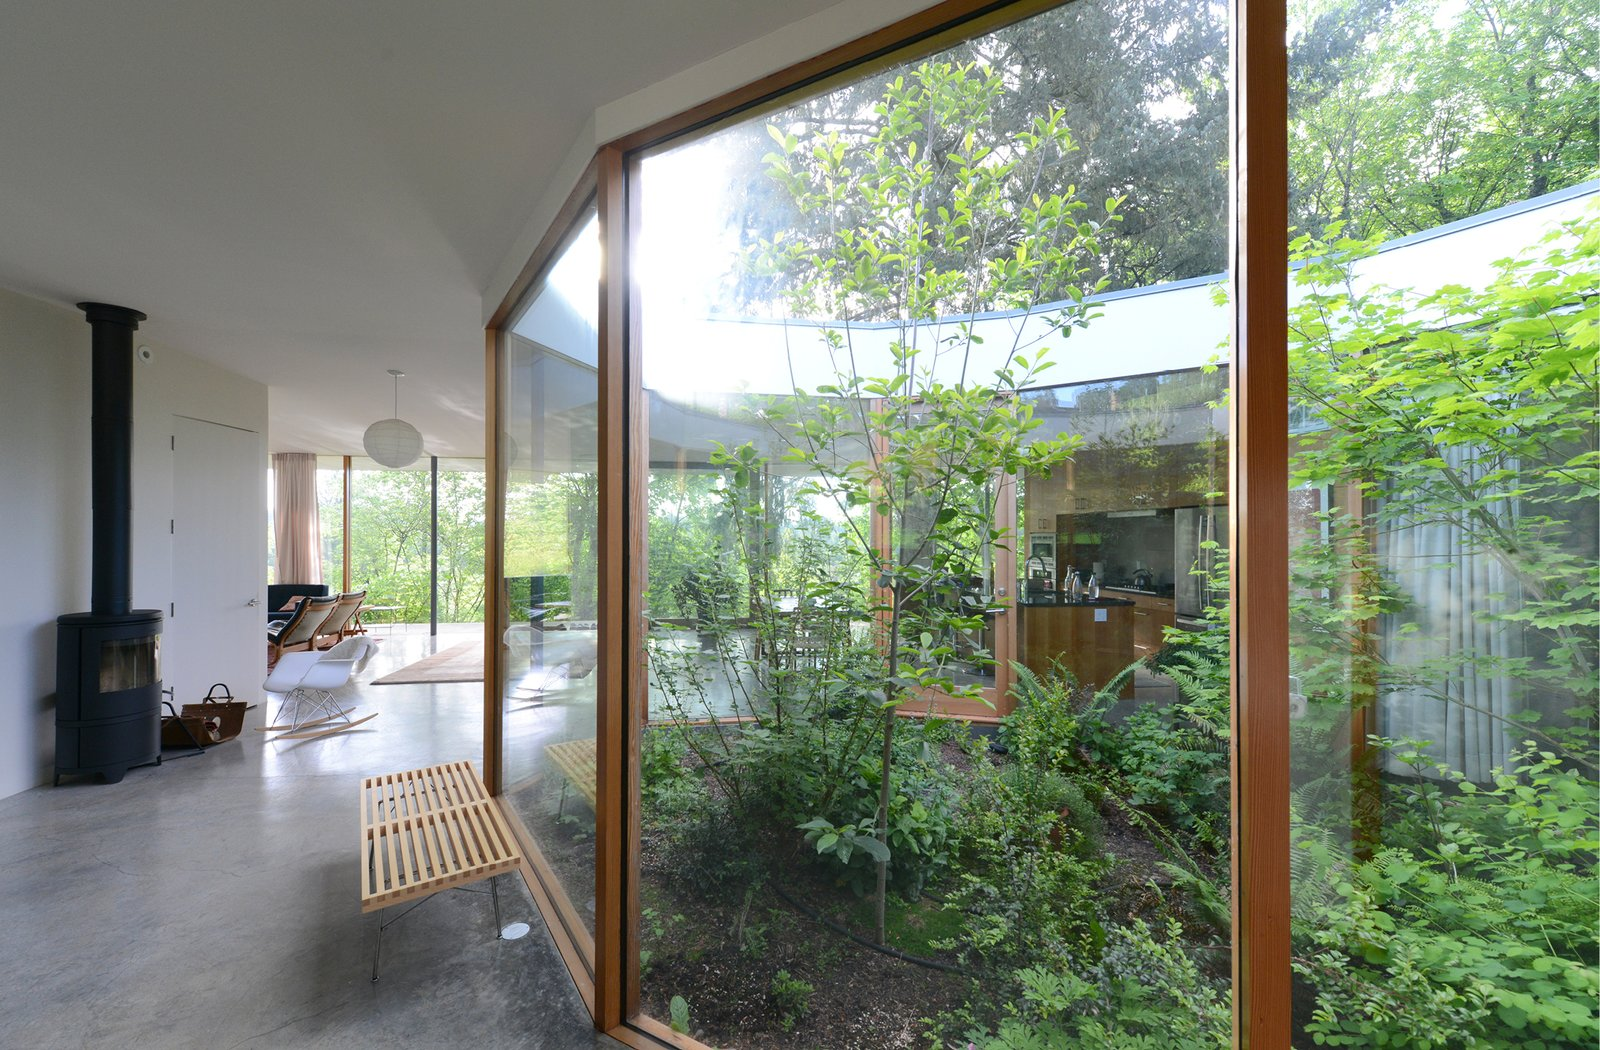 The faceted exterior glass courtyard introduces nature into daily life.   The Courtyard House by NO ARCHITECTURE